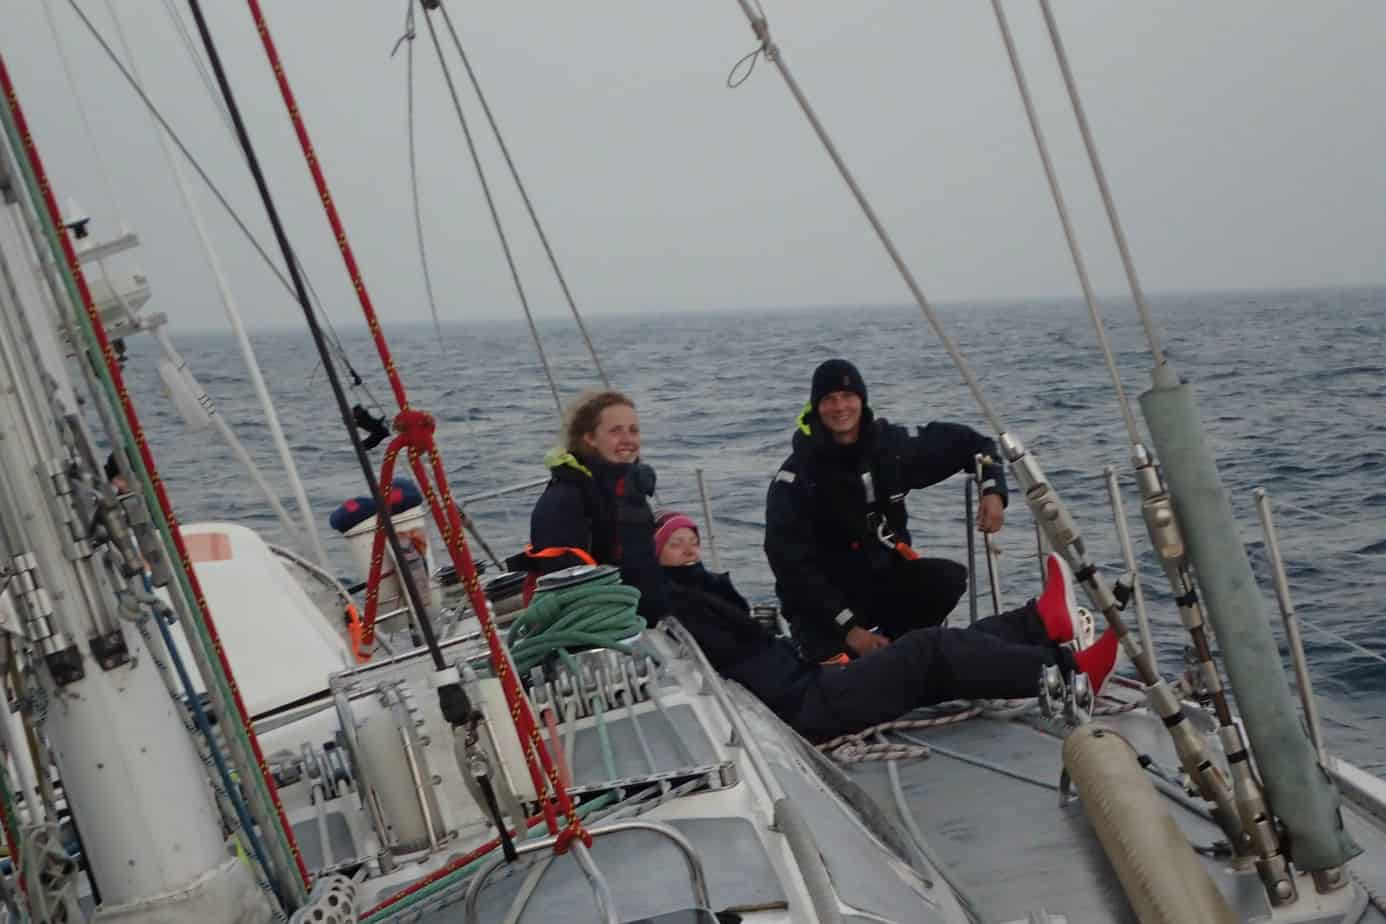 Sailing with Tall Ships Youth Trust